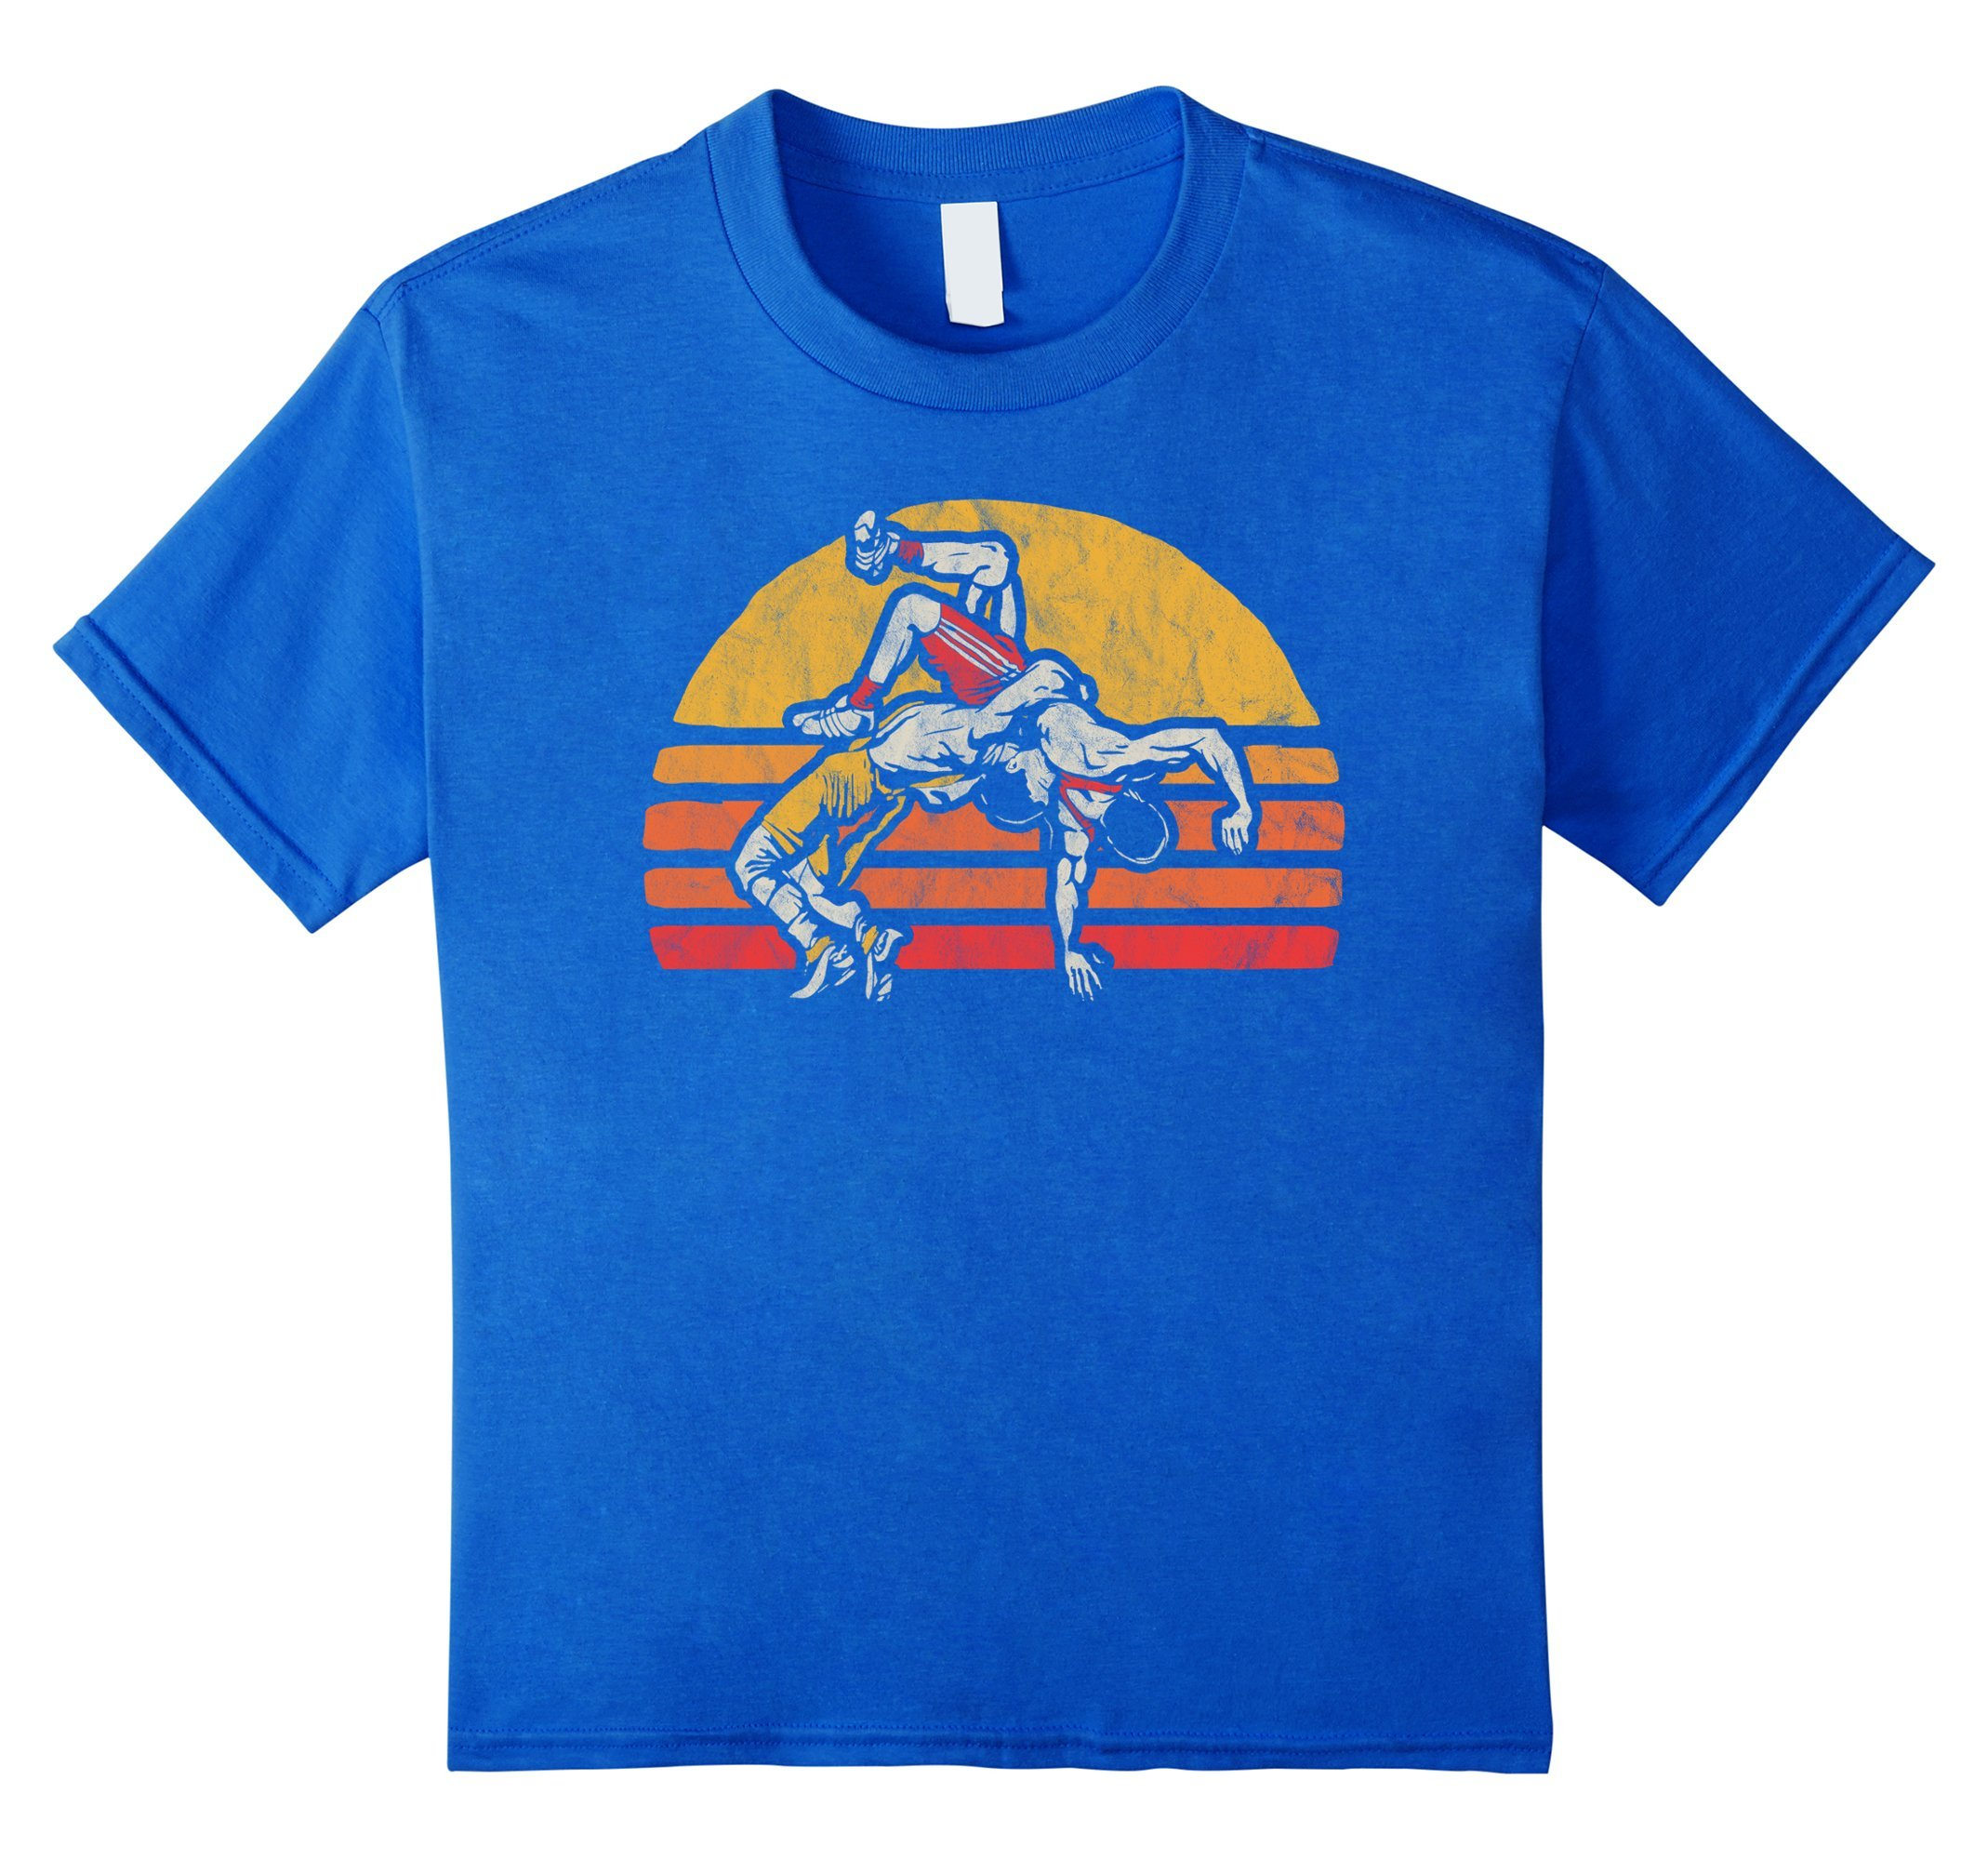 Kids Vintage Wrestling Graphic T-Shirt - Two Wrestlers and Sun 6 Royal Blue by Get To The Mat Wrestle Shirts